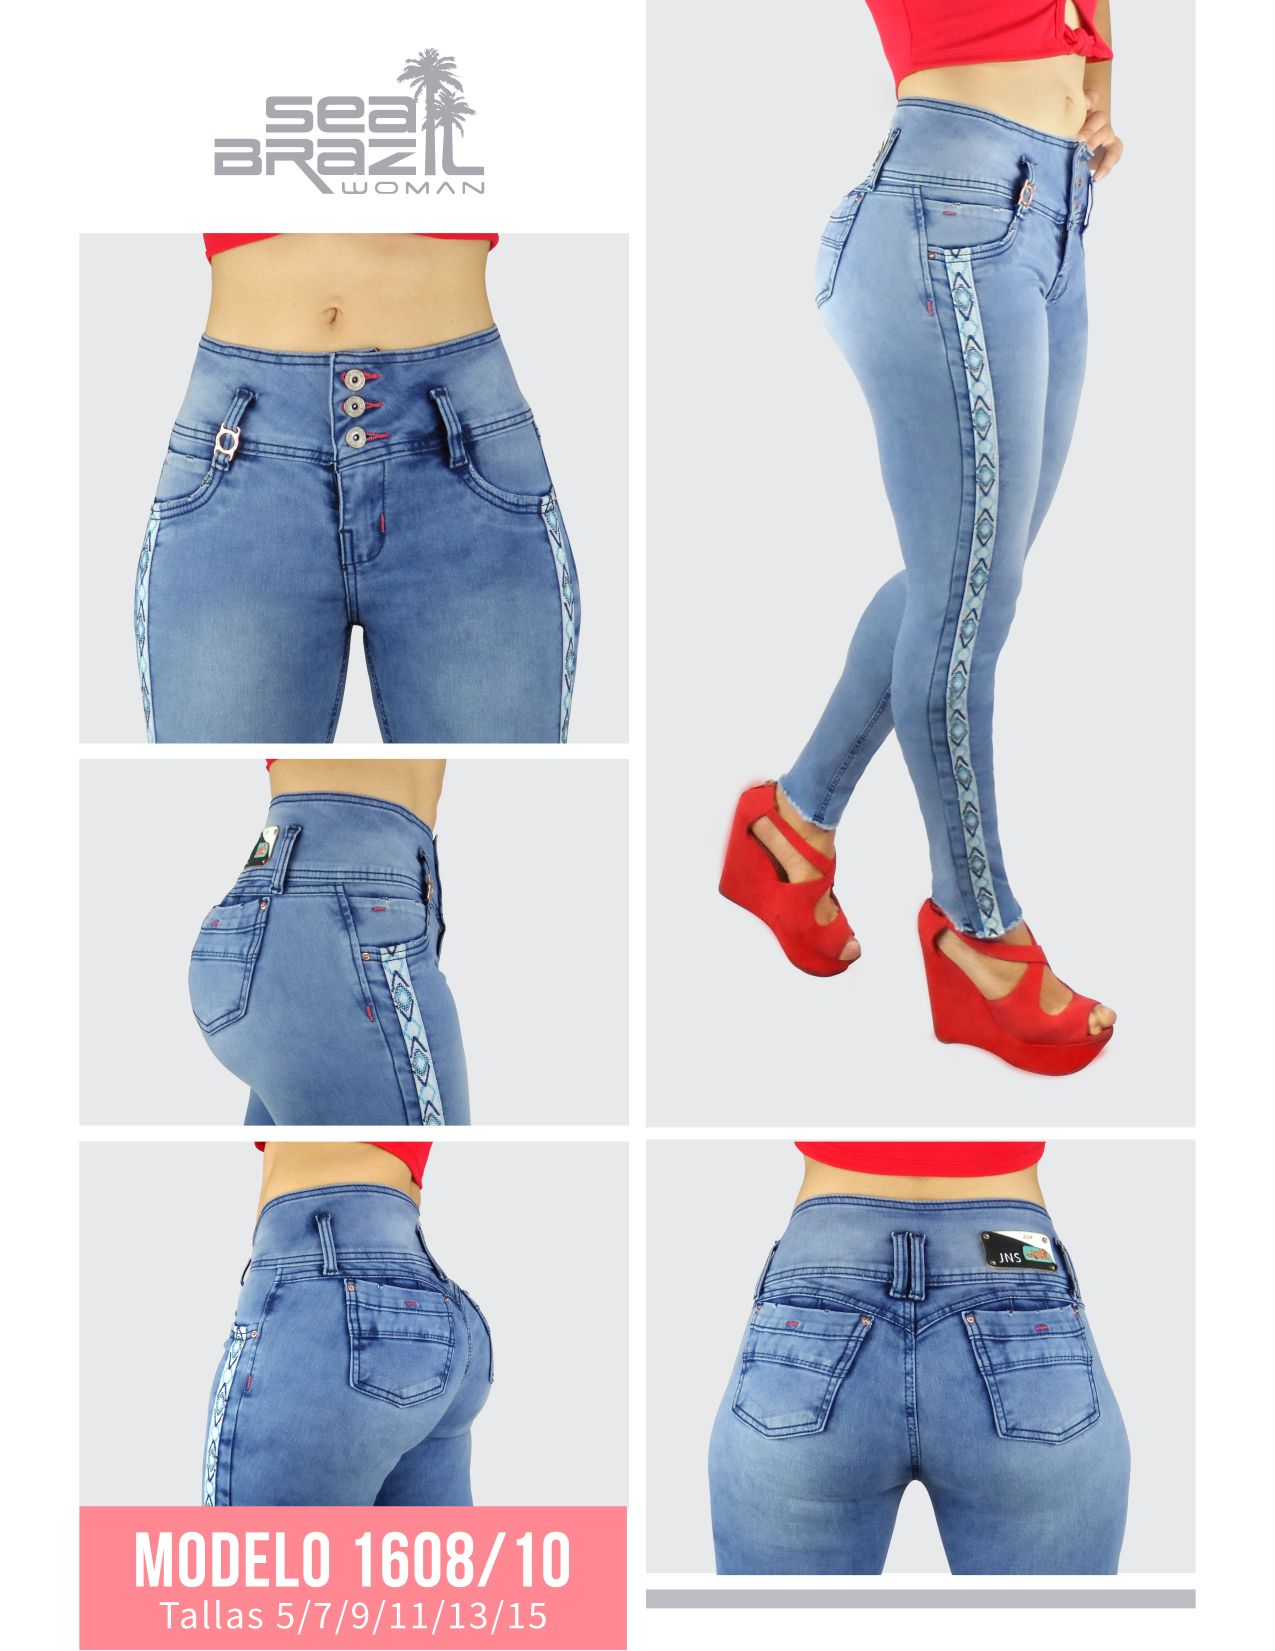 Jeans Modelo 1608 Colored Jeans Fashion Jeans